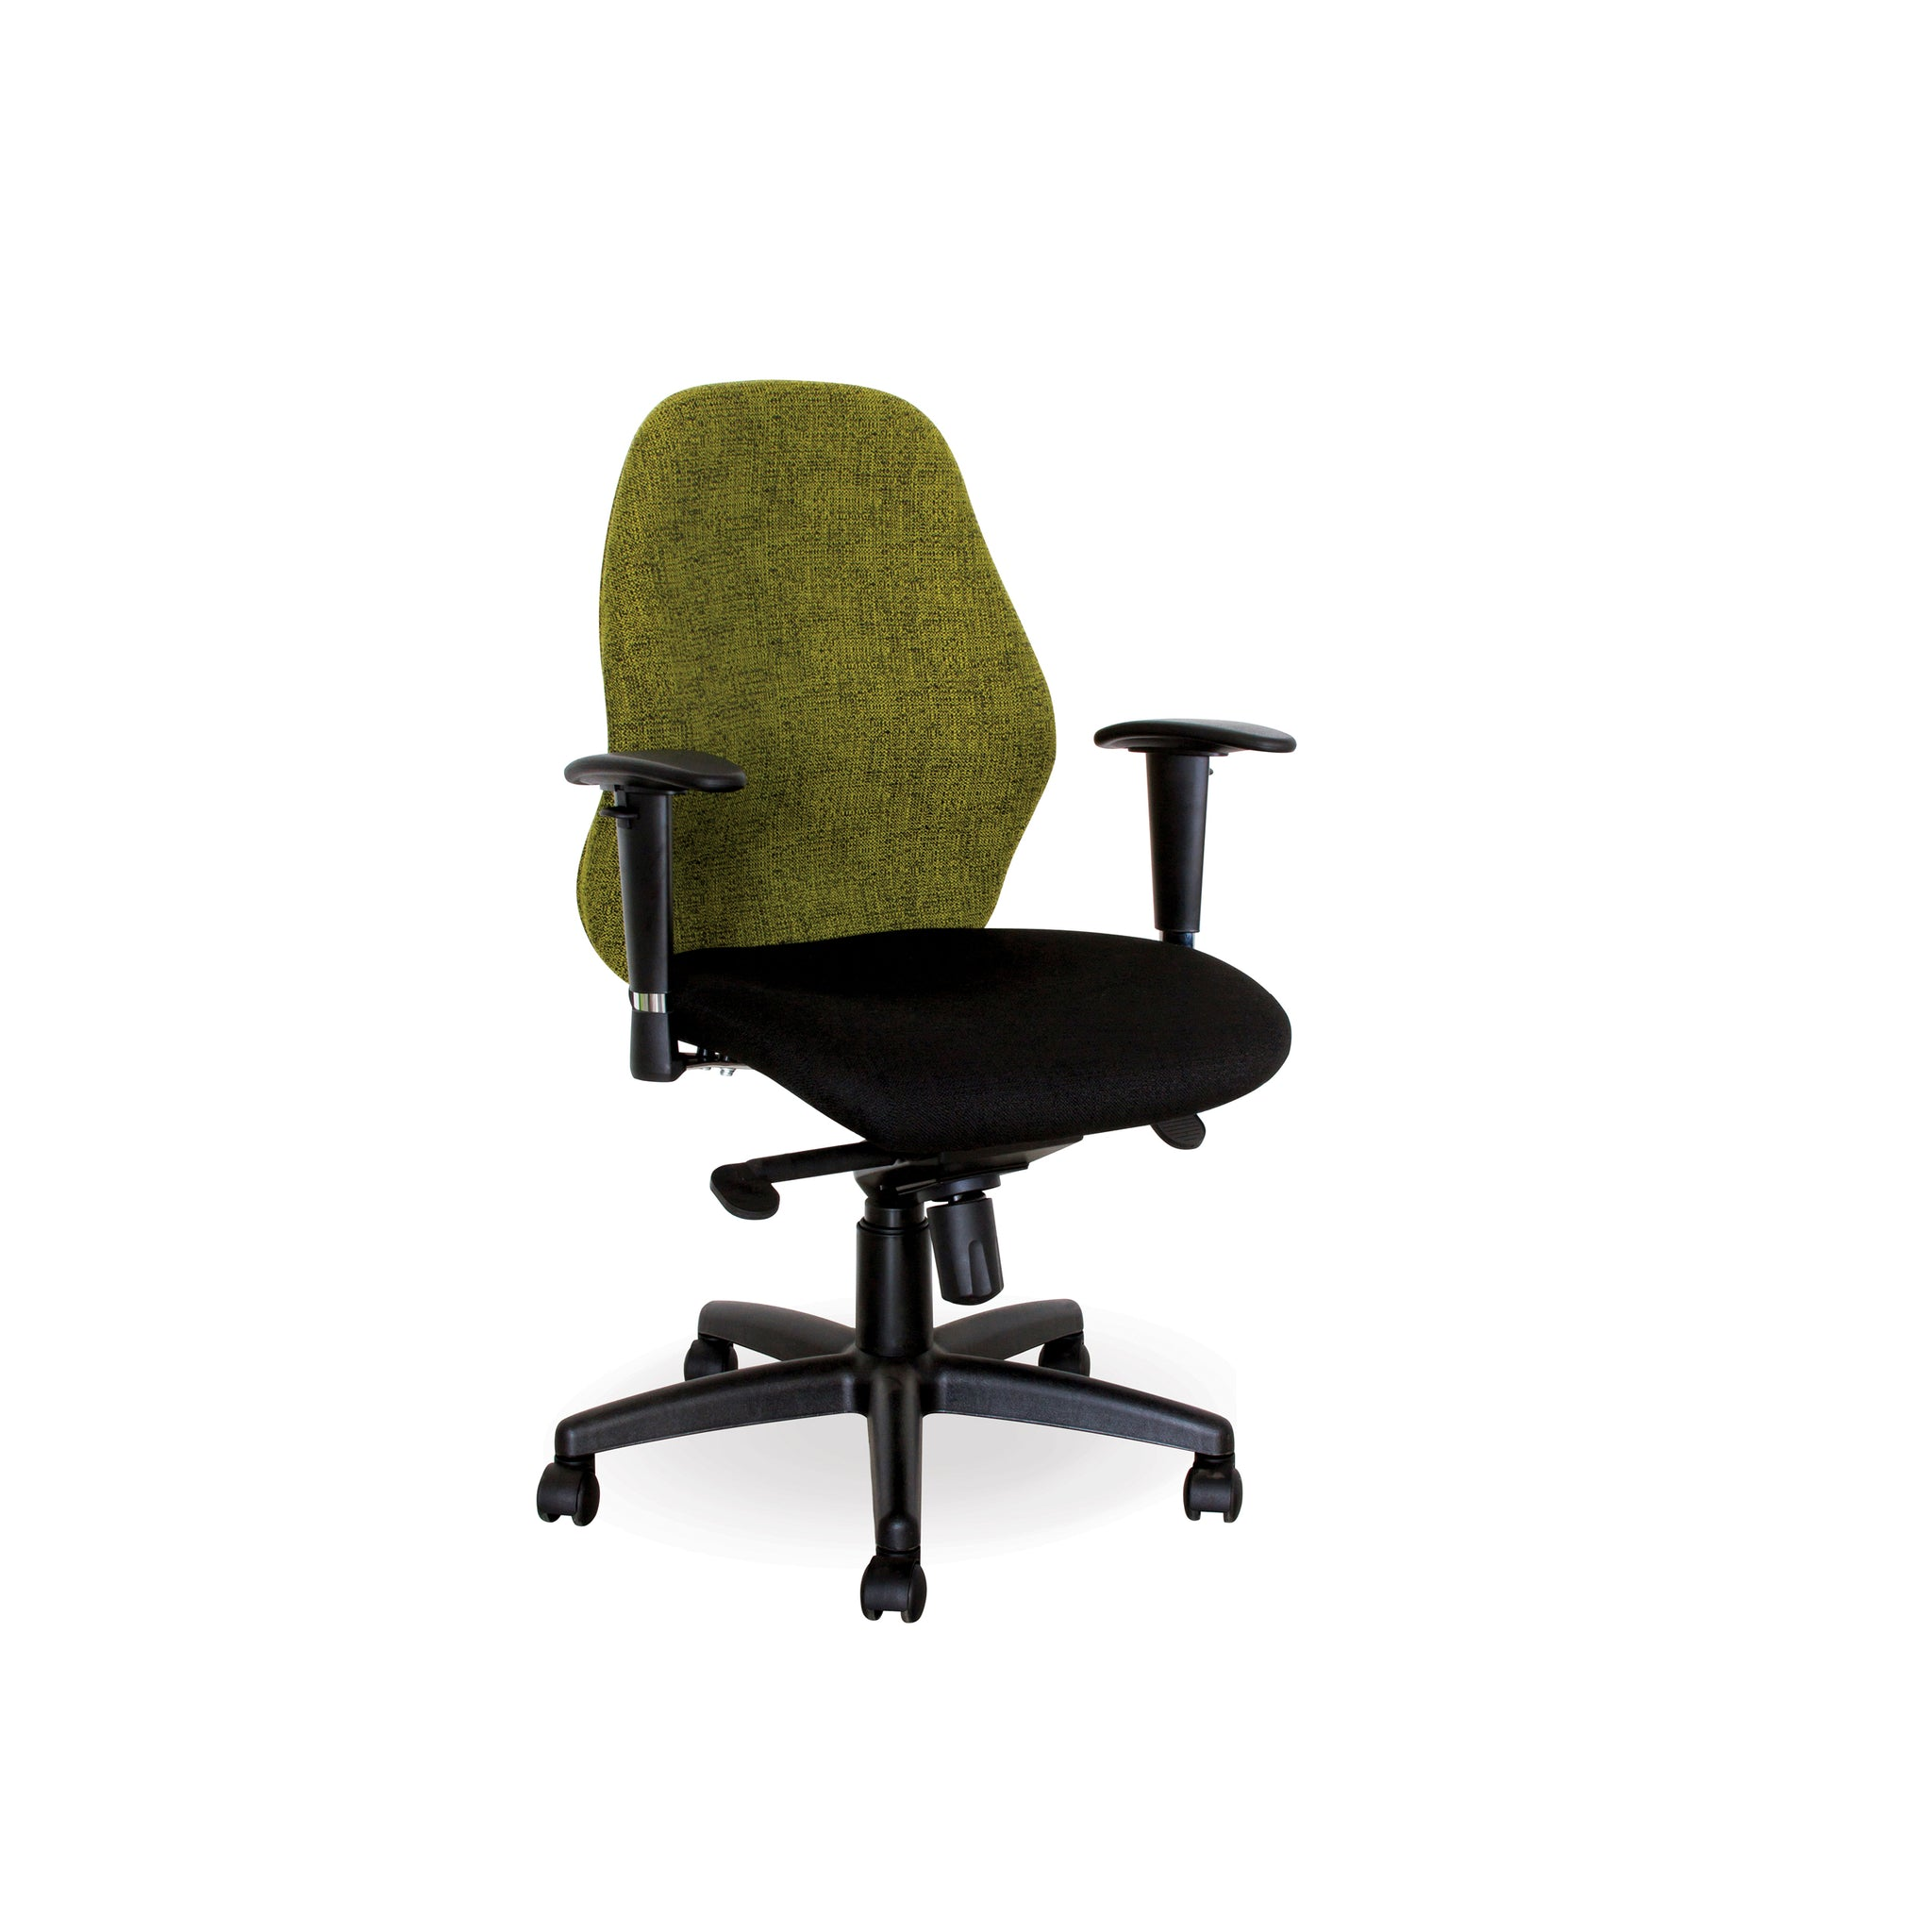 Hedcor Lucea mid back office chair